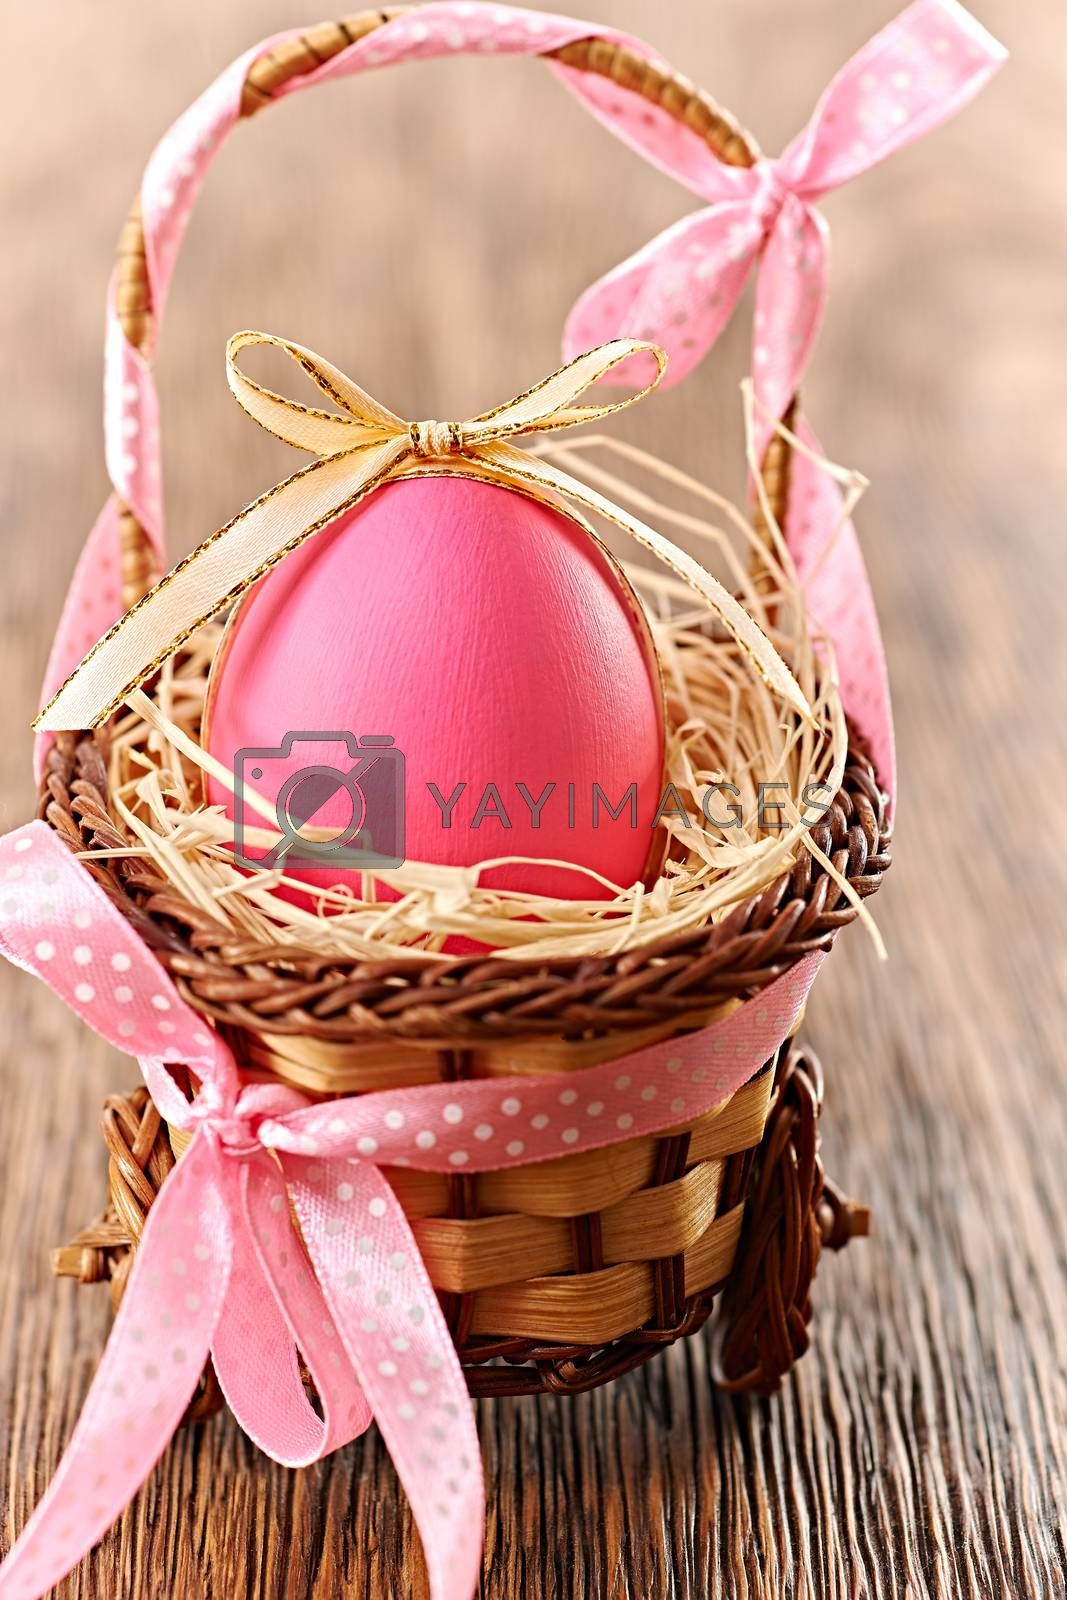 Easter egg in basket. Hand painted decorated pink egg with bow on wooden background. Unusual creative holiday greeting card